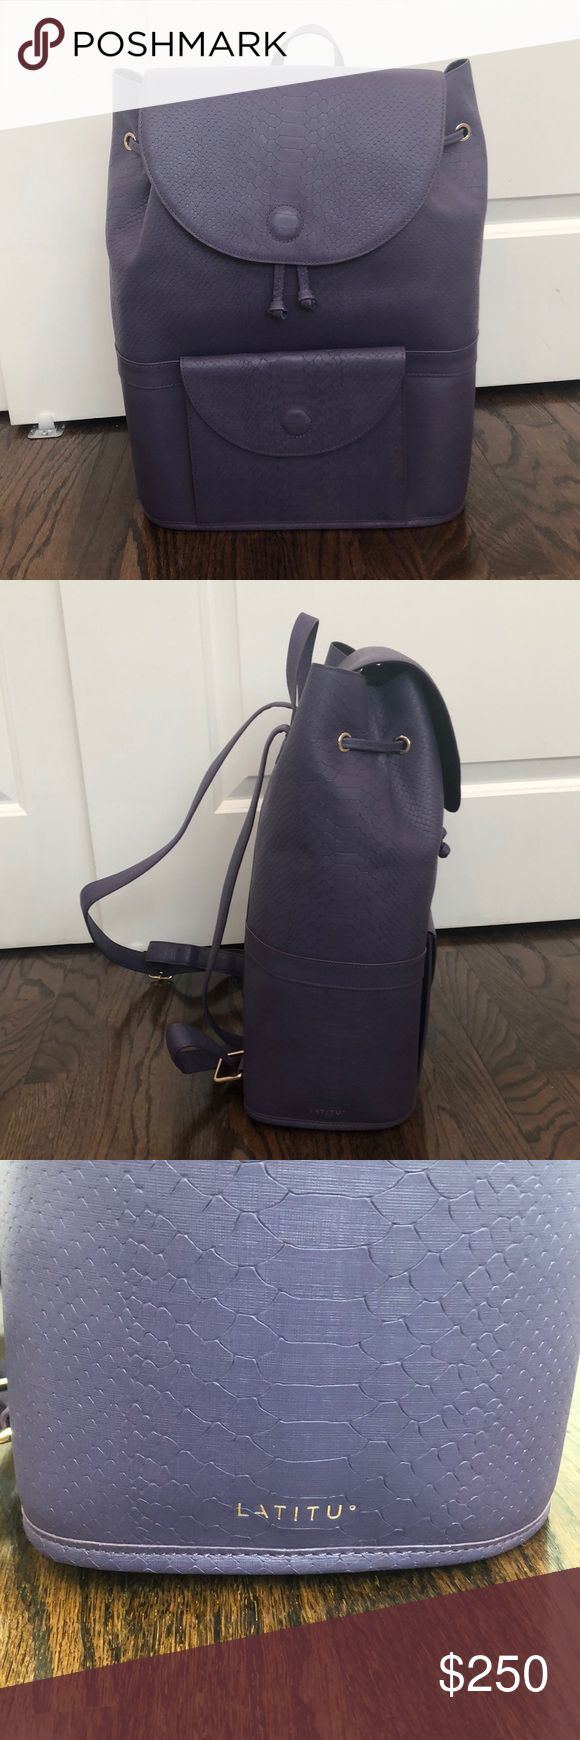 """New Latitu Purple Leather Backpack Brand new, never worn luxury brand Latitu Royal Purple City Backpack. 13""""L x 6.5""""W x 16""""H. 100% italian leather bucket style with magnetic closures and added security of adjustable straps. Cushioned straps rest comfortable. Features exterior front pocket and interior zippered pocket. Reinforced base prevents bag sag. 4"""" top handle, strap maximum is 39 inches. Crocodile embossed leather. Enough room for laptop, camera and essentials. latitu Bags Backpacks"""